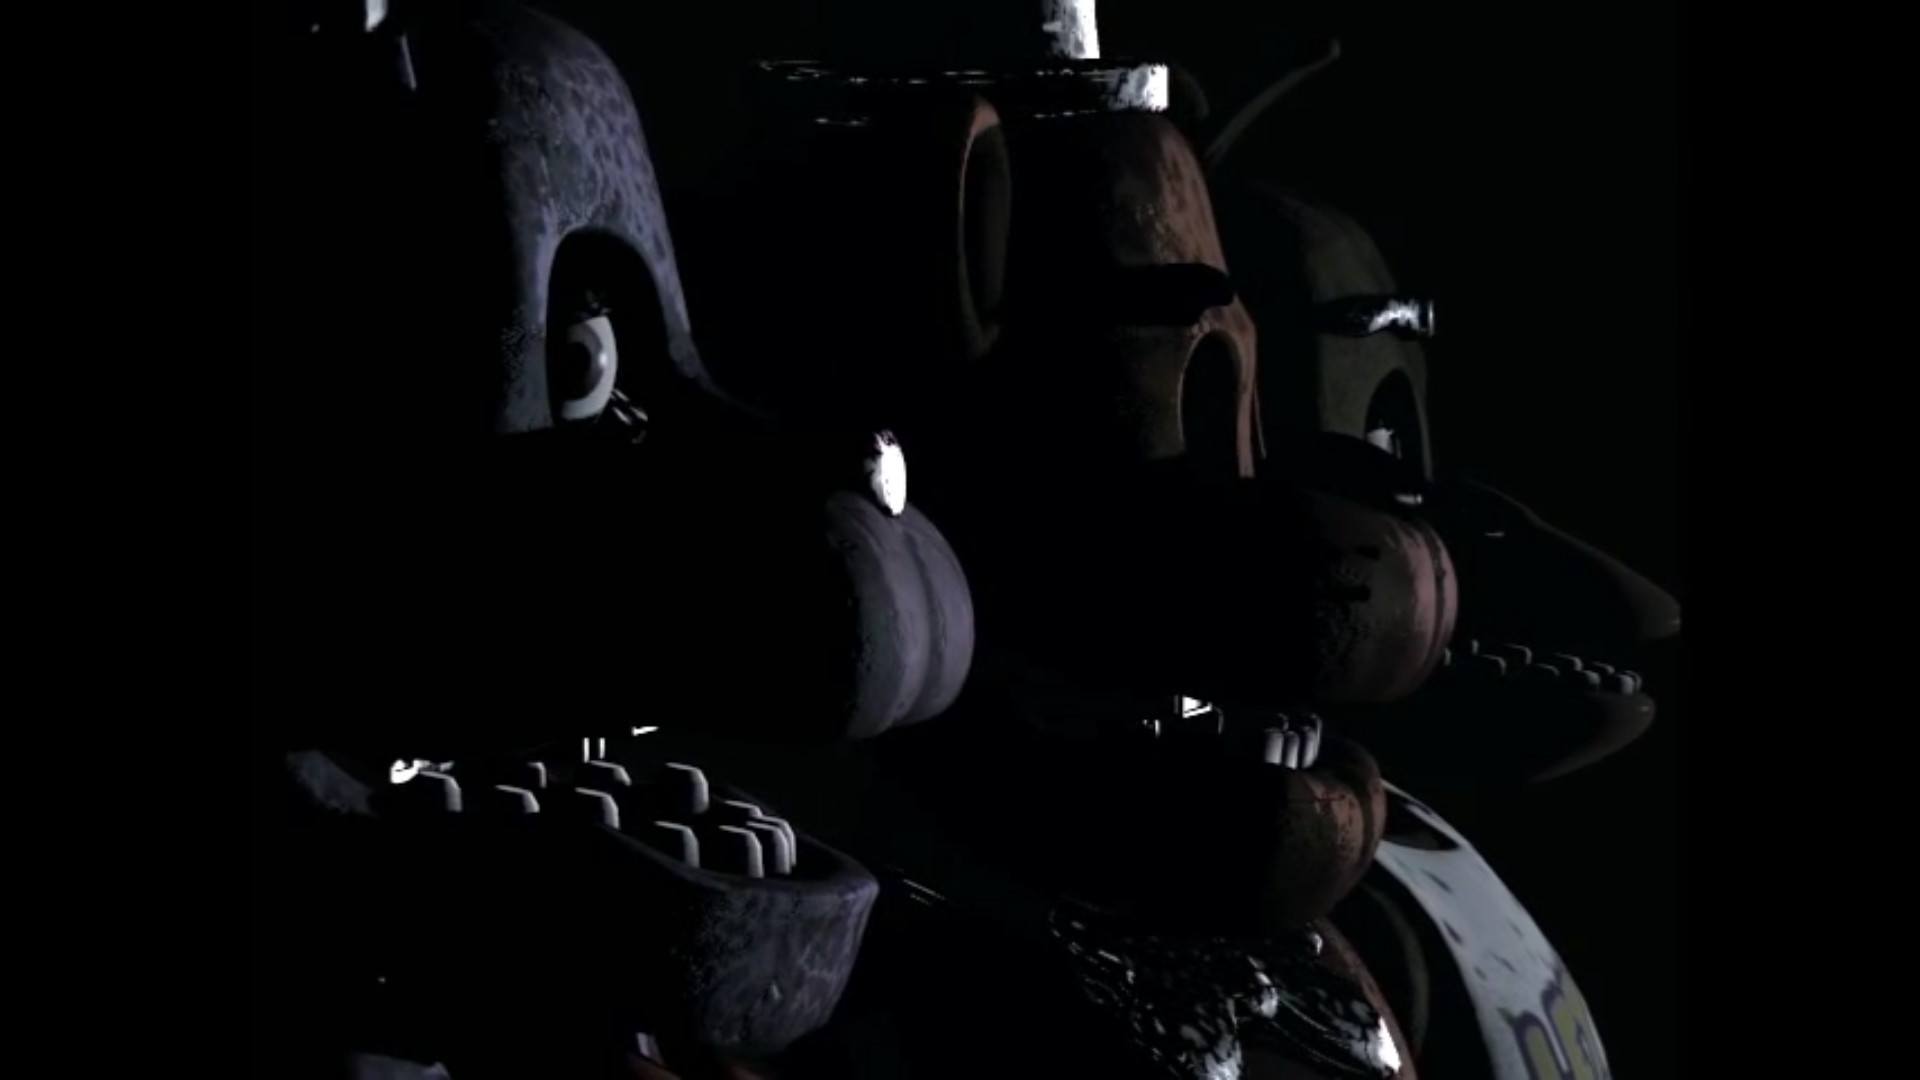 Free Download Five Nights At Freddys Wallpapers 80 Images